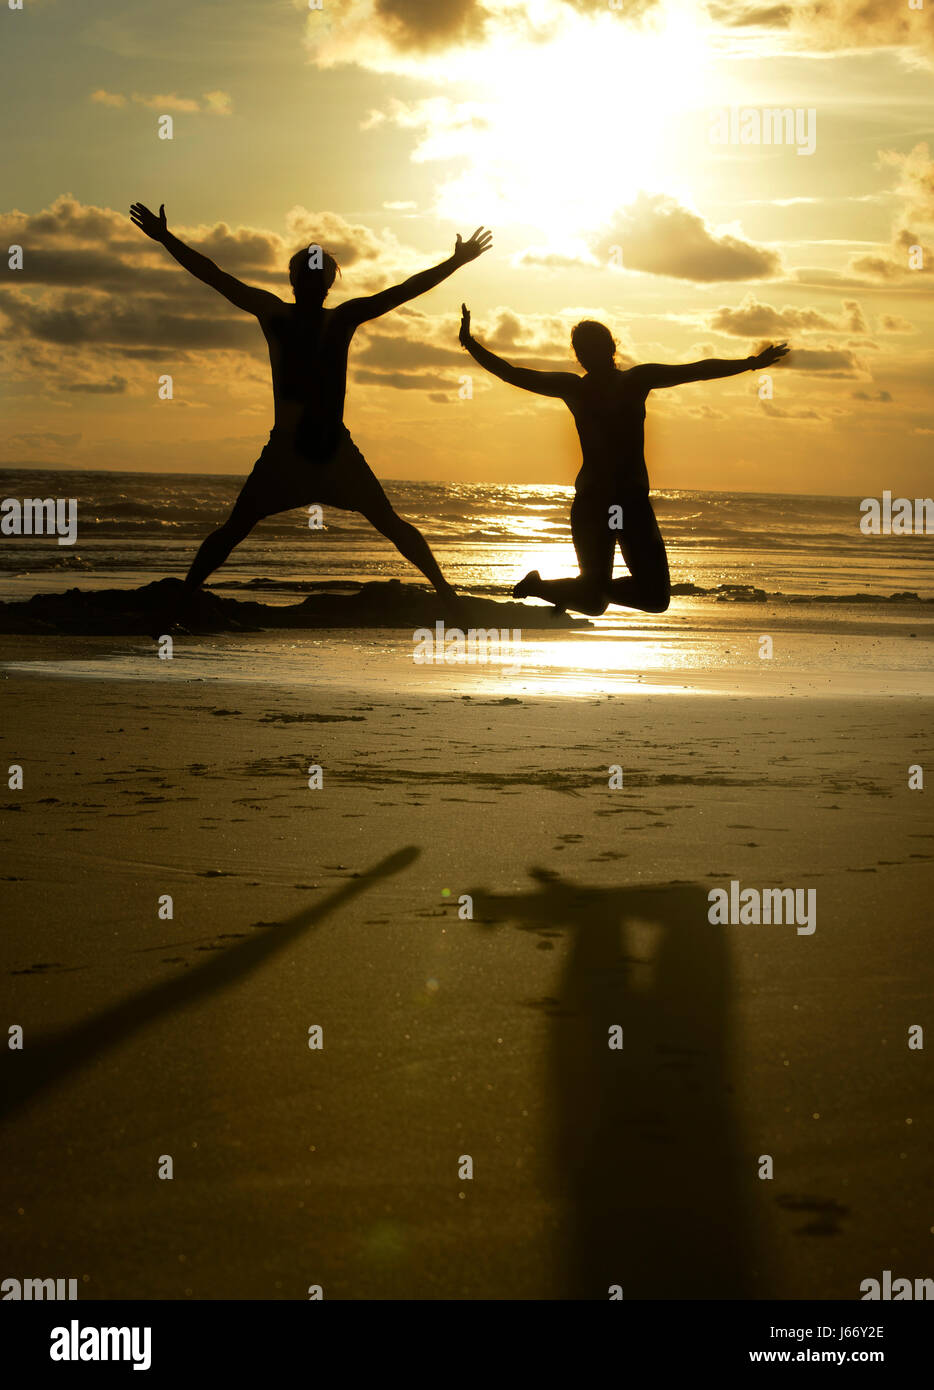 Friends jump into the air on a beach at sunset. - Stock Image